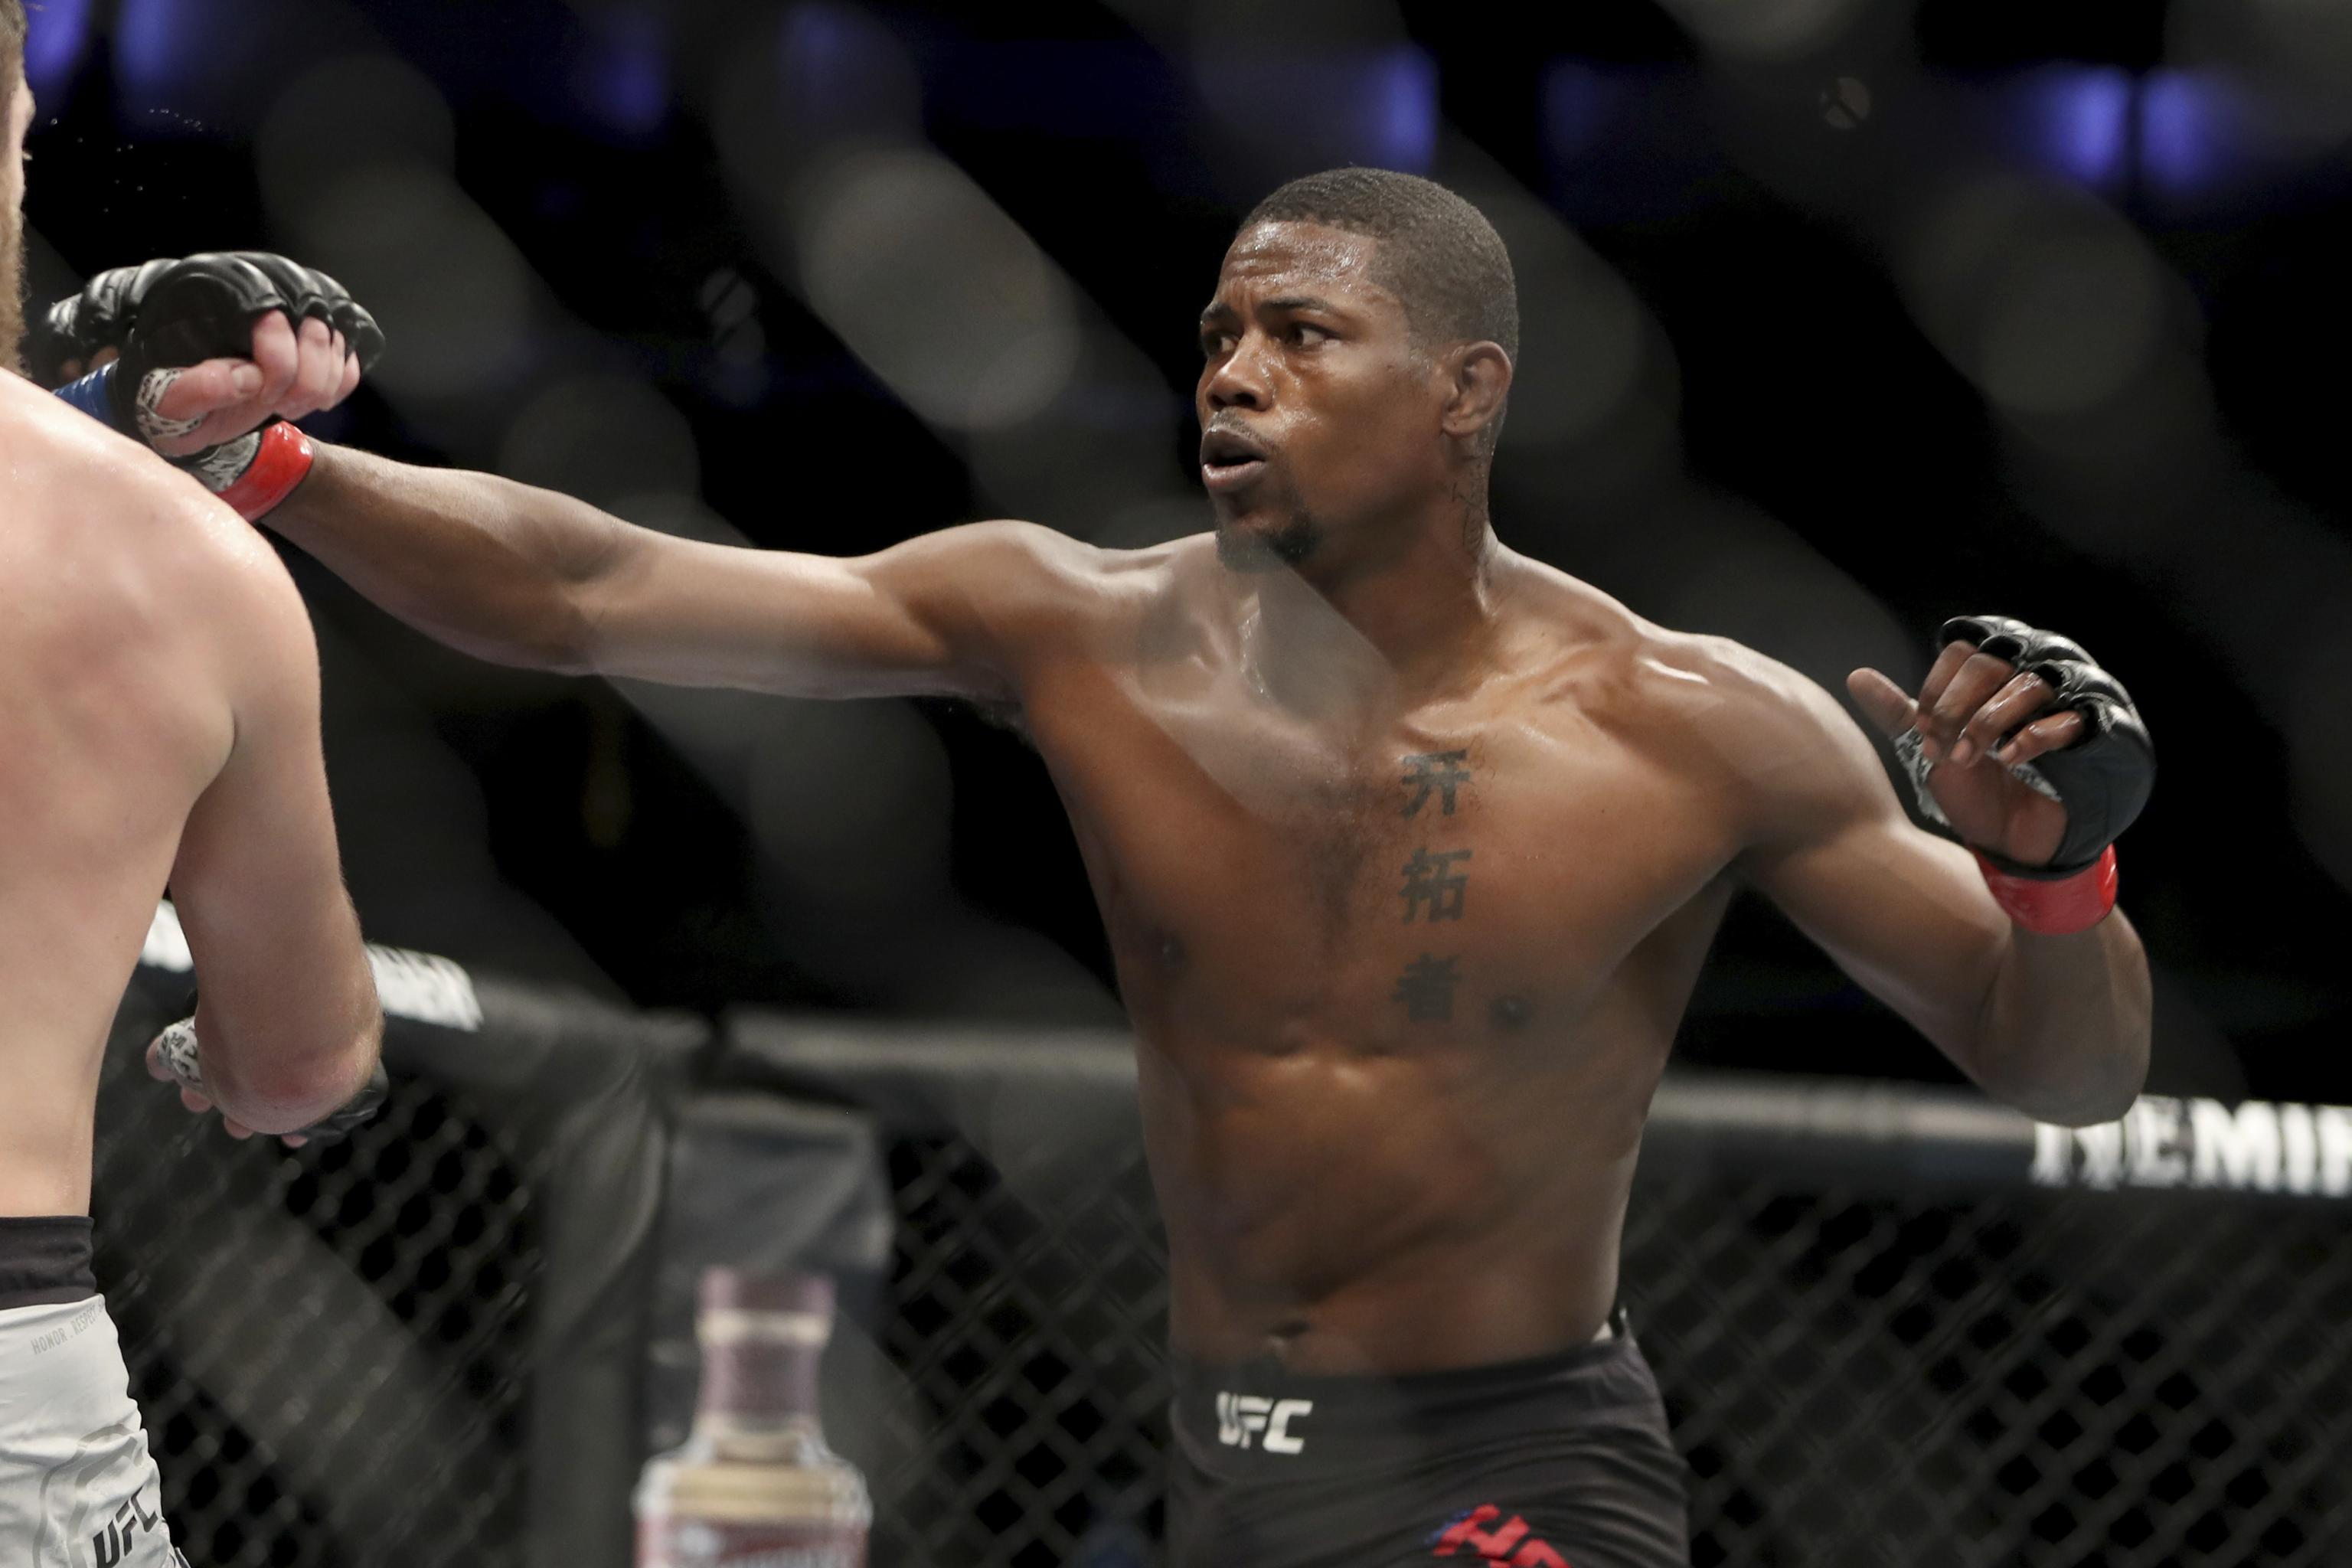 Ufc S Kevin Holland Wants To Fight Champion Israel Adesanya More In 2021 Bleacher Report Latest News Videos And Highlights